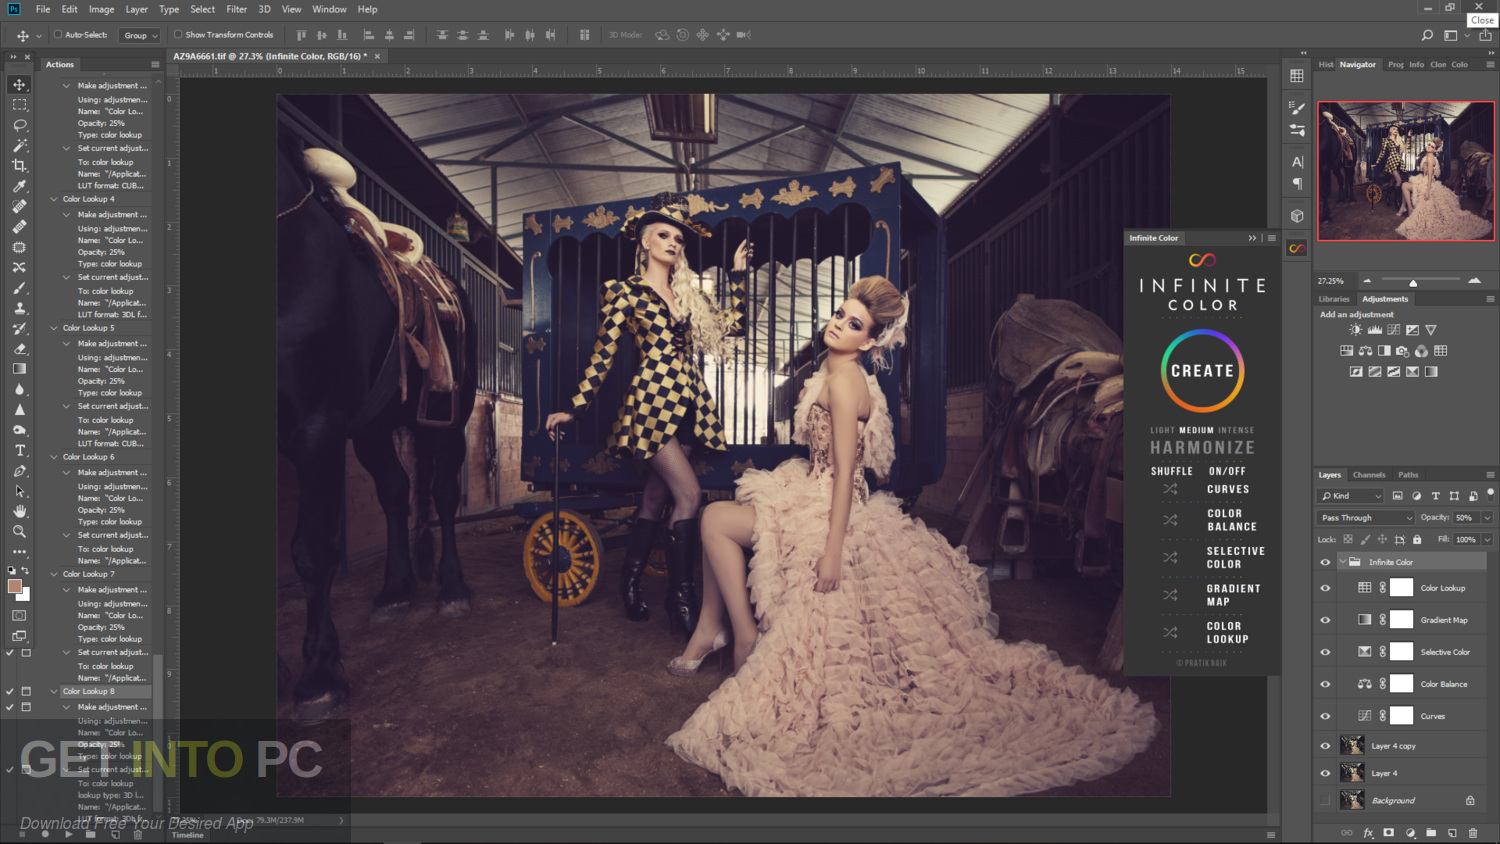 Infinite Color Panel Plug-in for Photoshop Windows Latest Version Download-GetintoPC.com